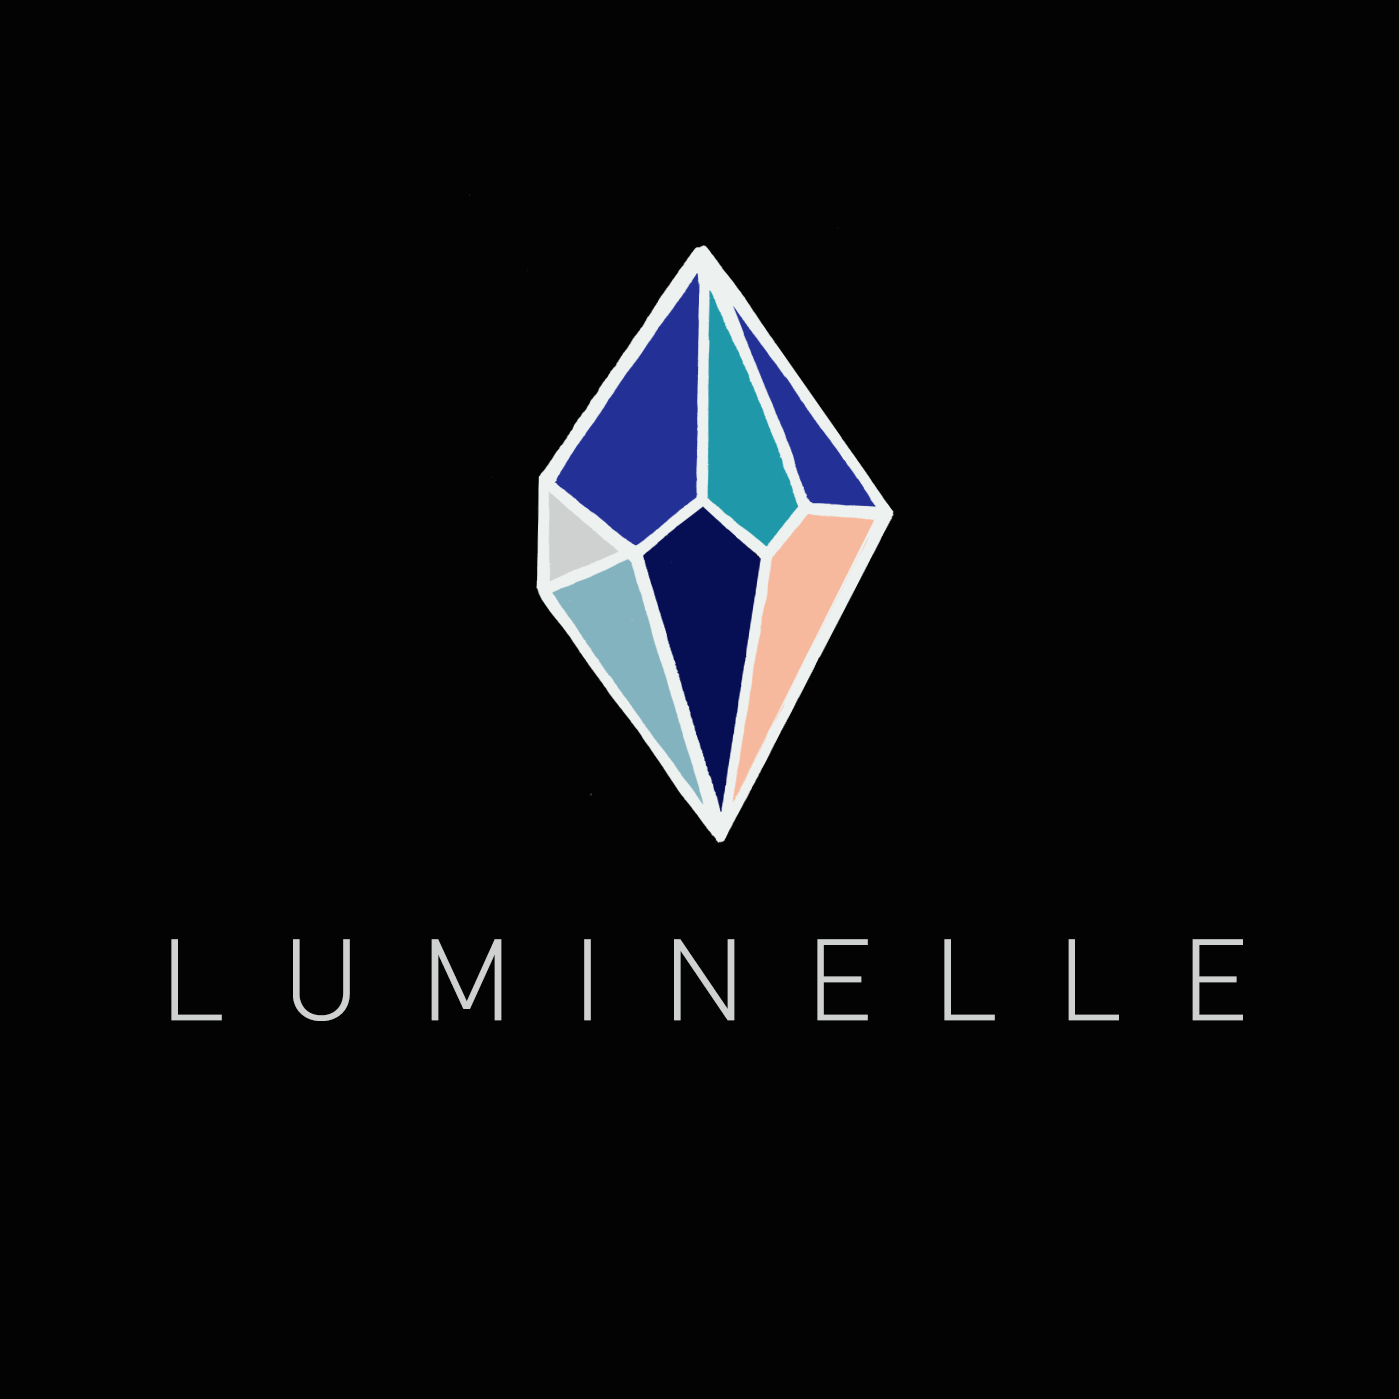 Luminelle.png